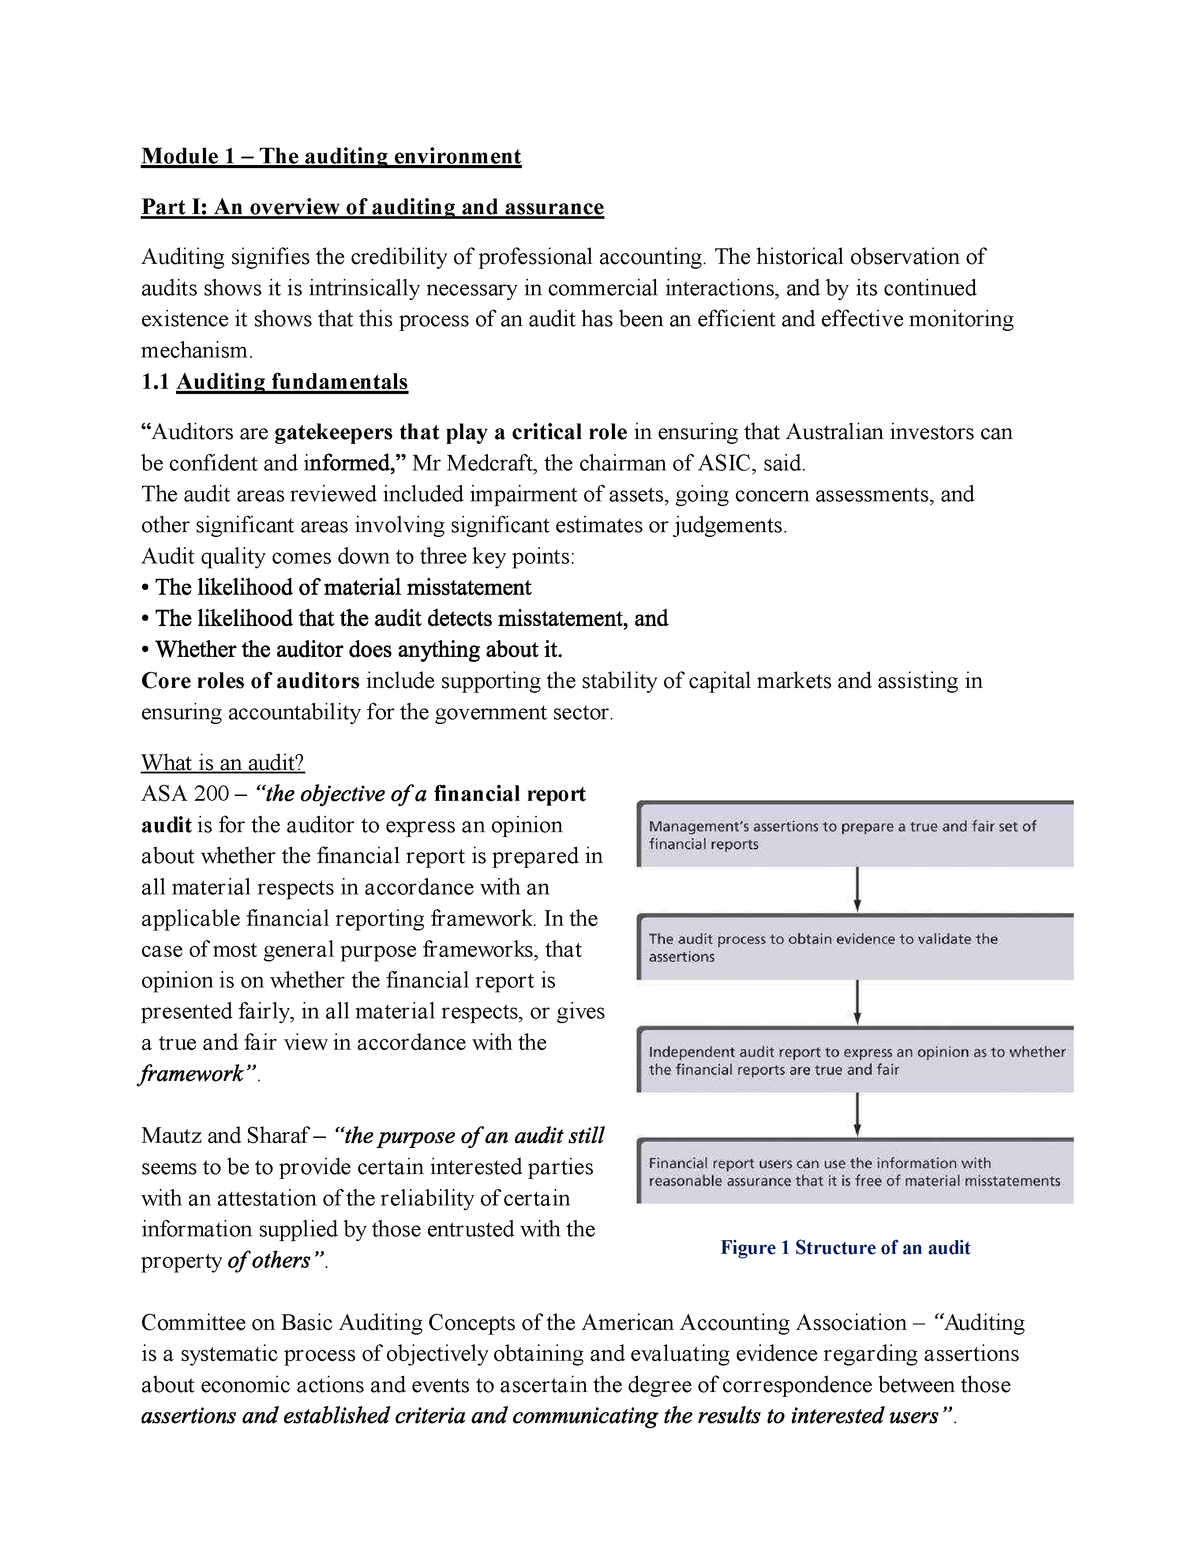 Lecture notes, lectures 1-6 - ACCT30004: Auditing And Assurance